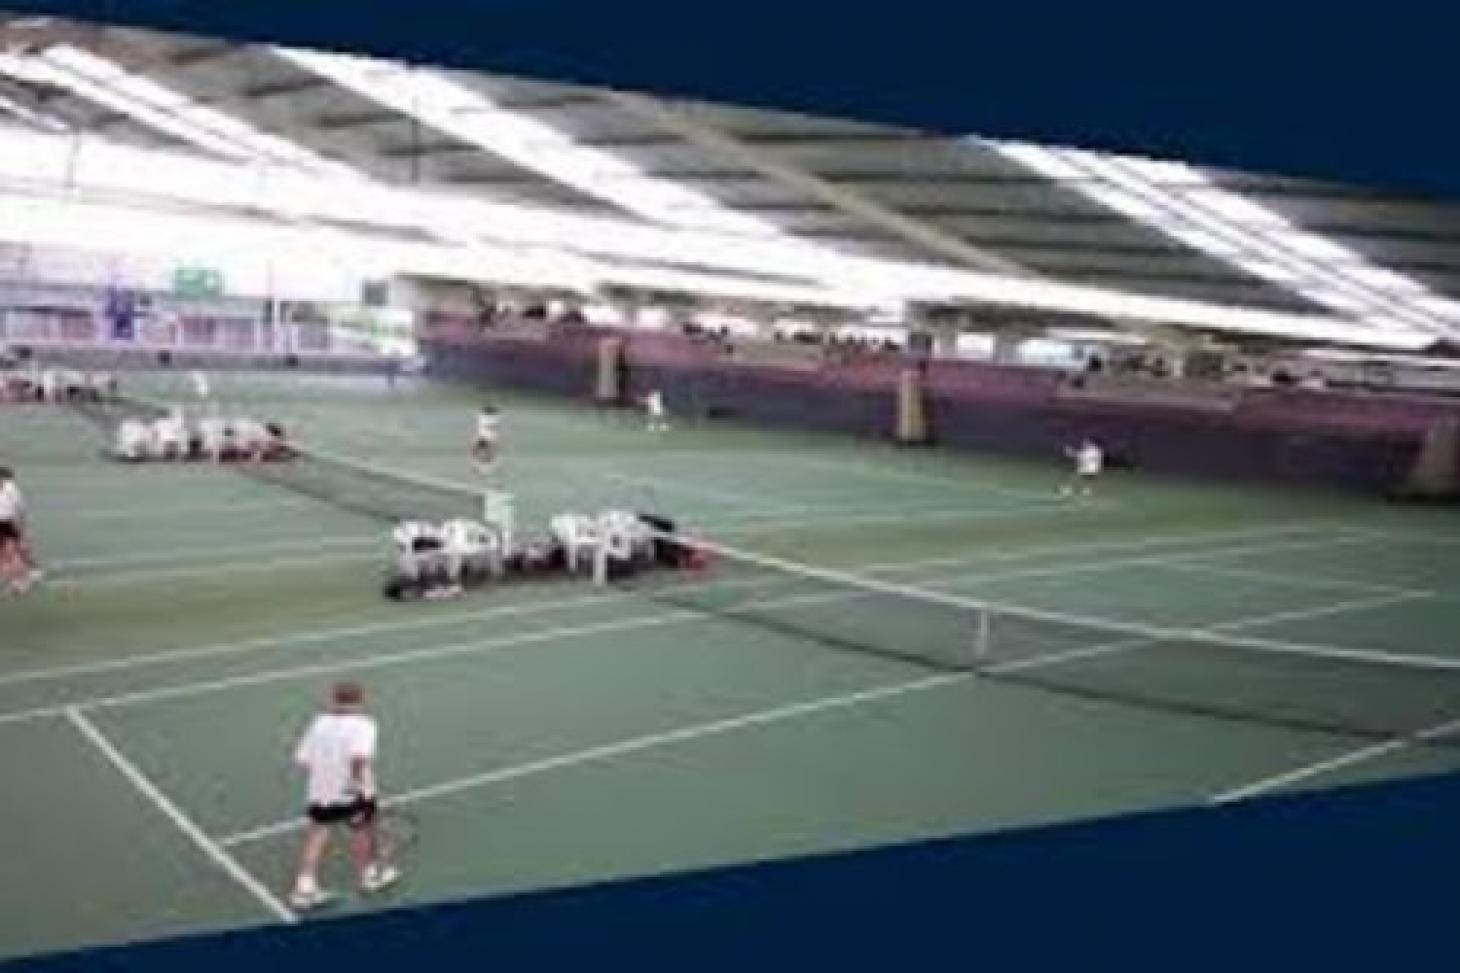 Redbridge Sports Centre Indoor tennis court